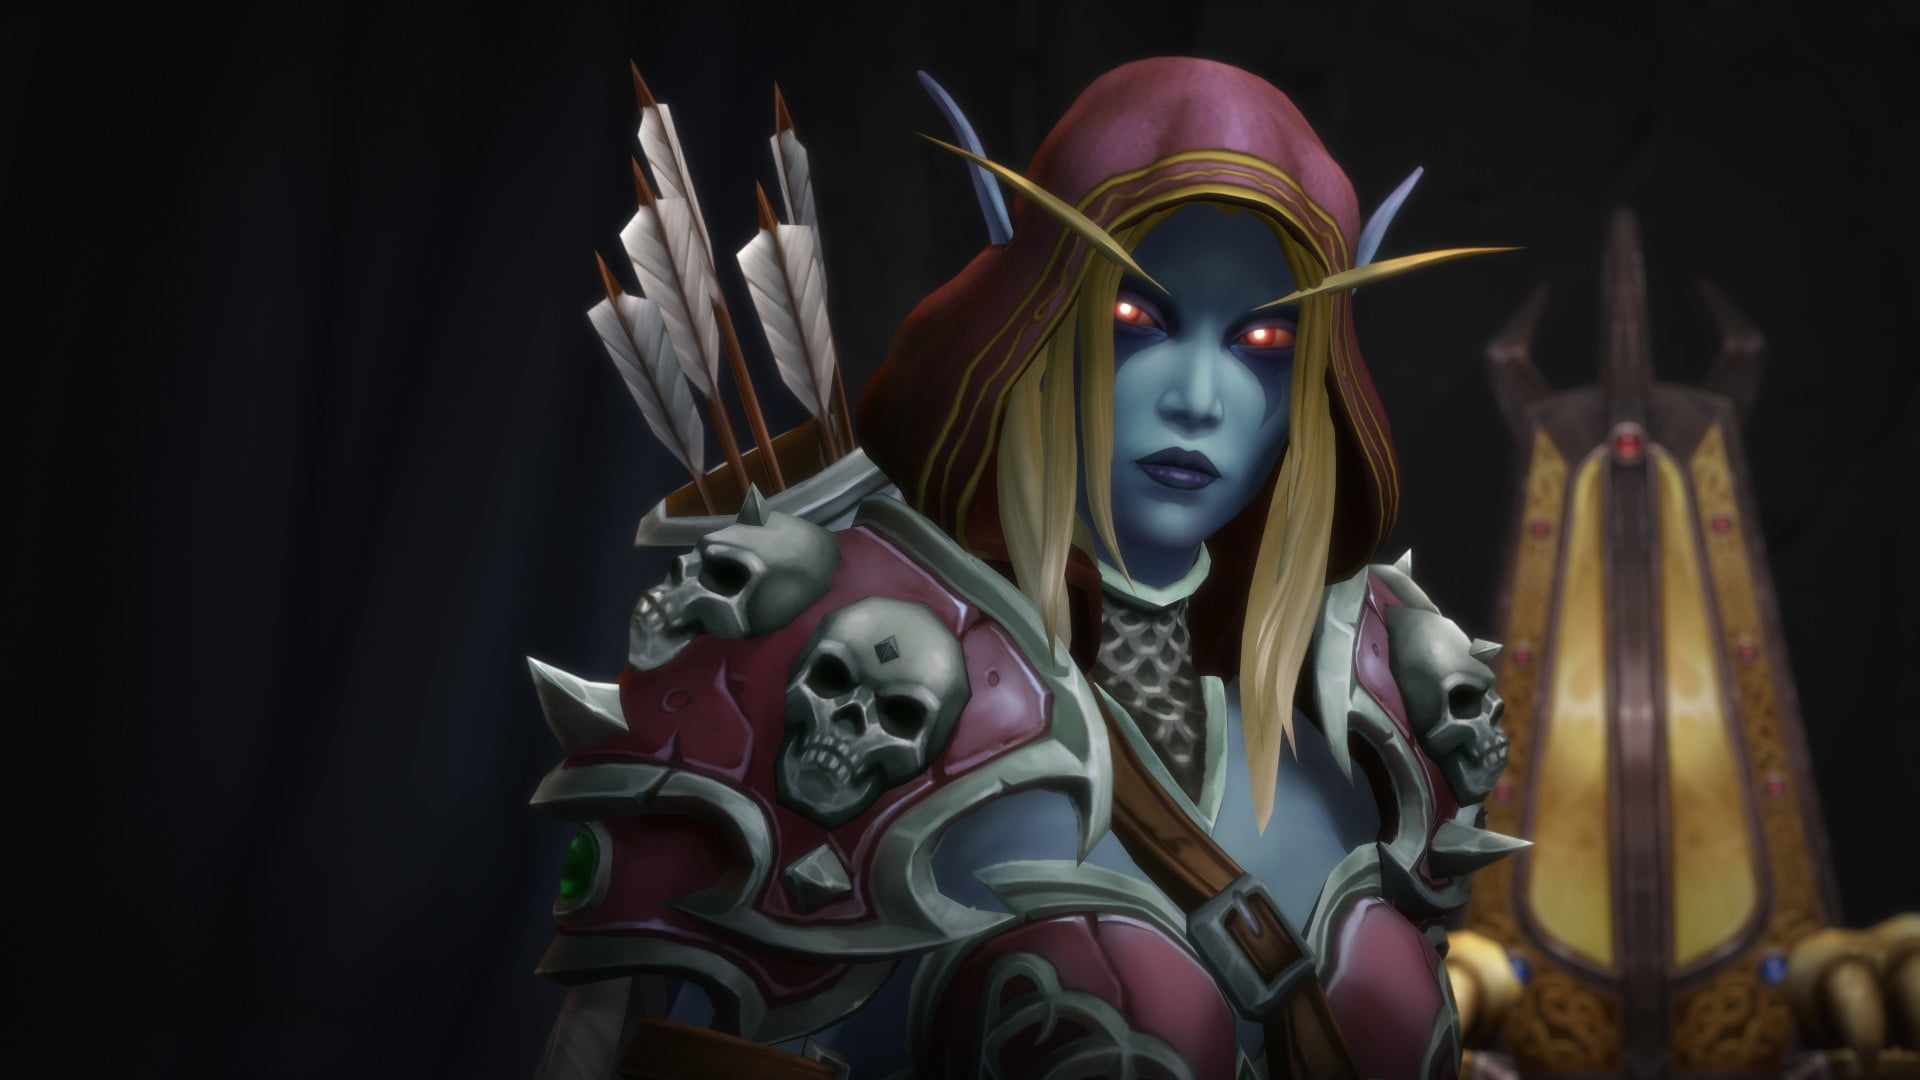 World of Warcraft: Battle for Azeroth' is Game's Fastest